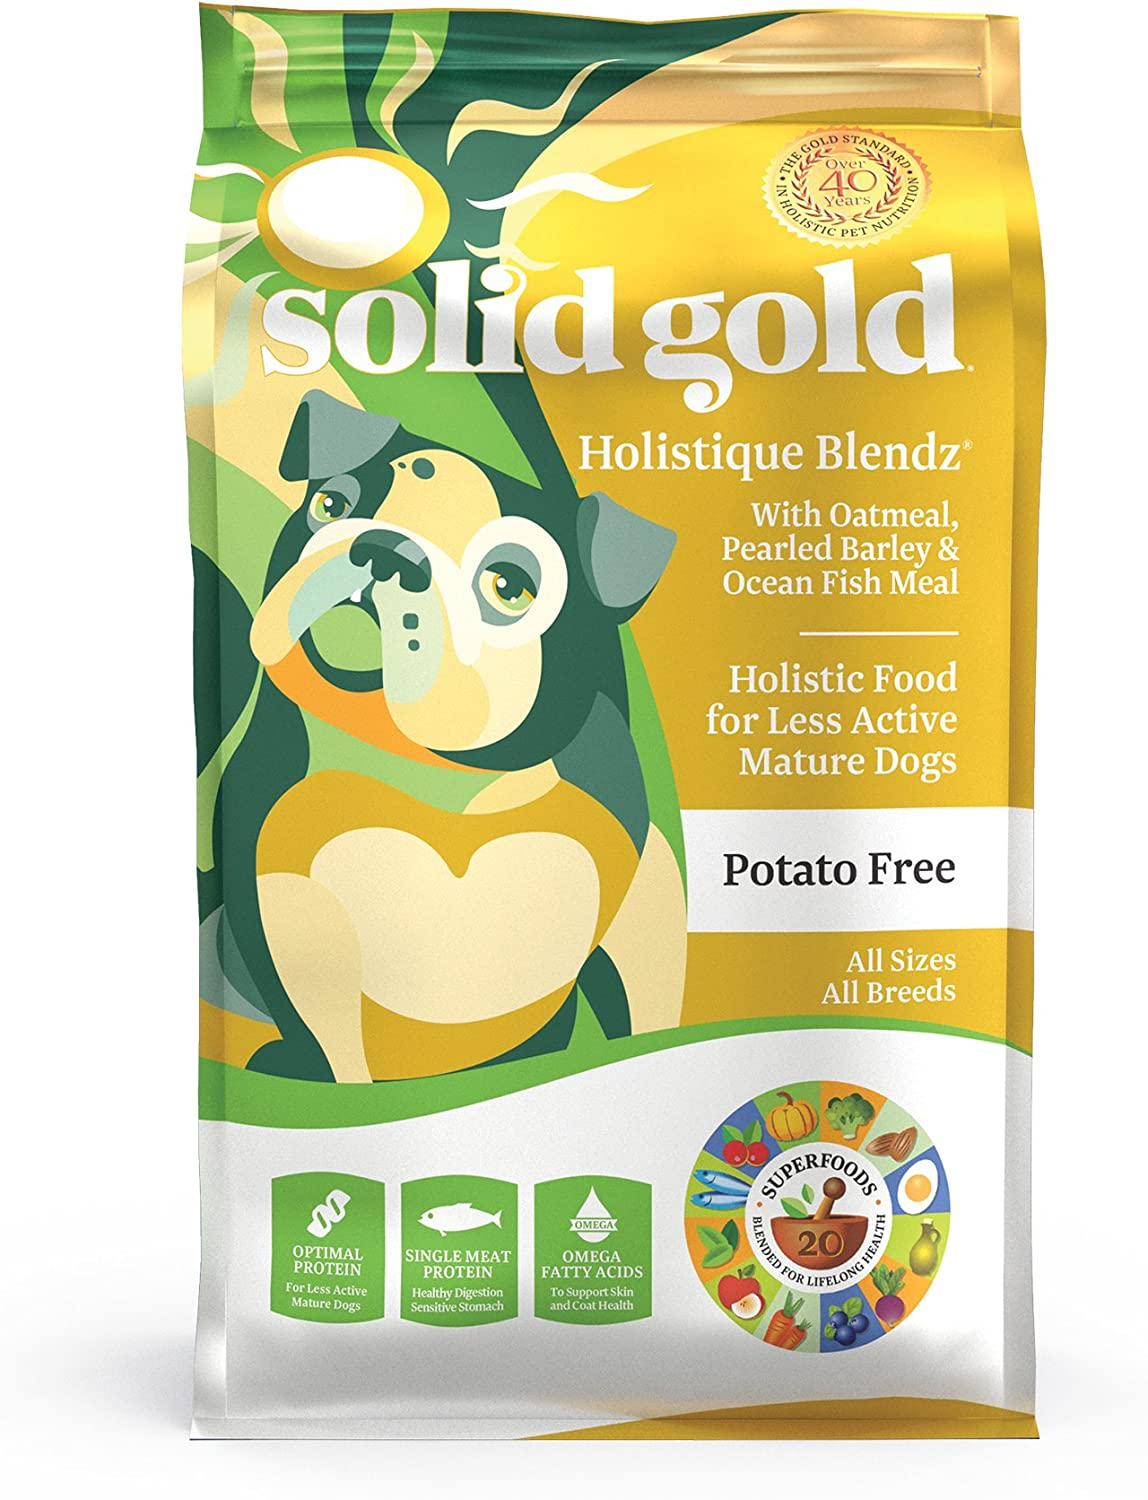 Solid Gold – Holistique Blendz – Natural Senior Dog Food for Sensitive Stomachs – Oatmeal, Pearled Barley and Fish Meal – Potato Free – Dry Dog Food